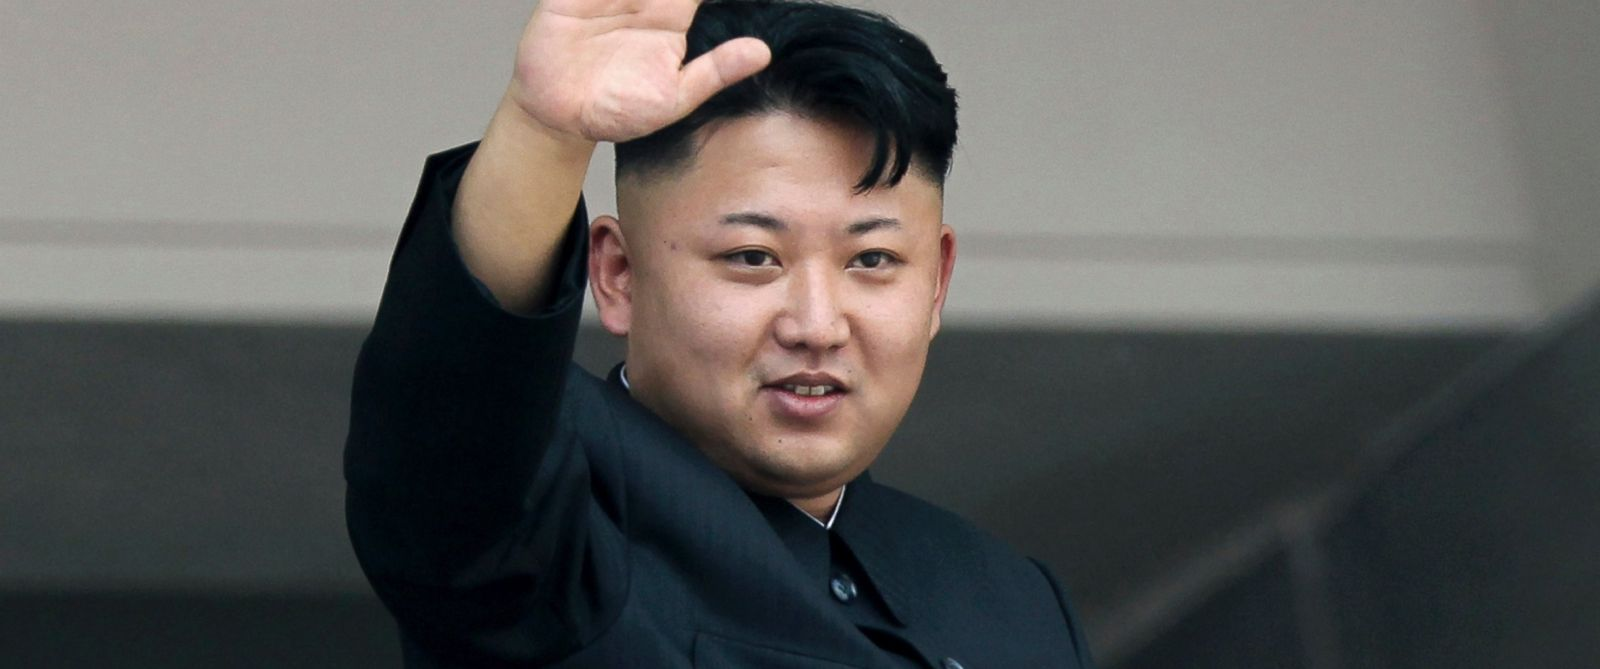 PHOTO: North Koreas leader Kim Jong Un waves to spectators and participants of a mass military parade celebrating the 60th anniversary of the Korean War armistice in Pyongyang, North Korea in this July 27, 2013 file photo.